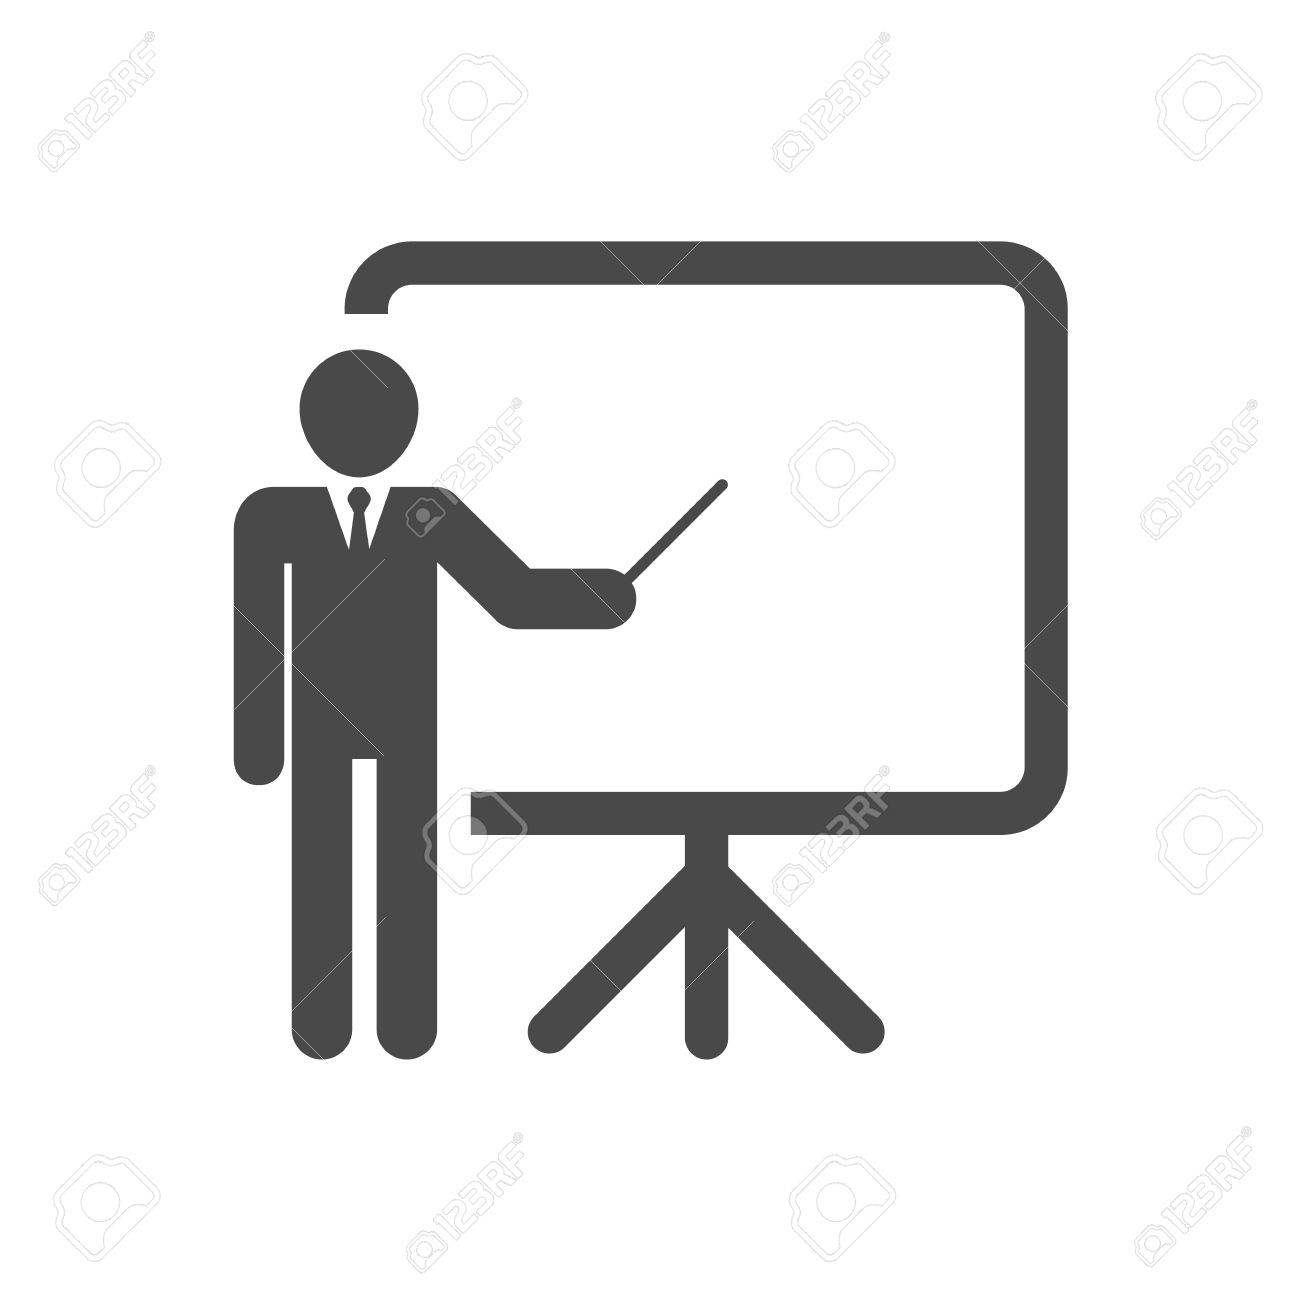 training presentation and education icon vector illustration